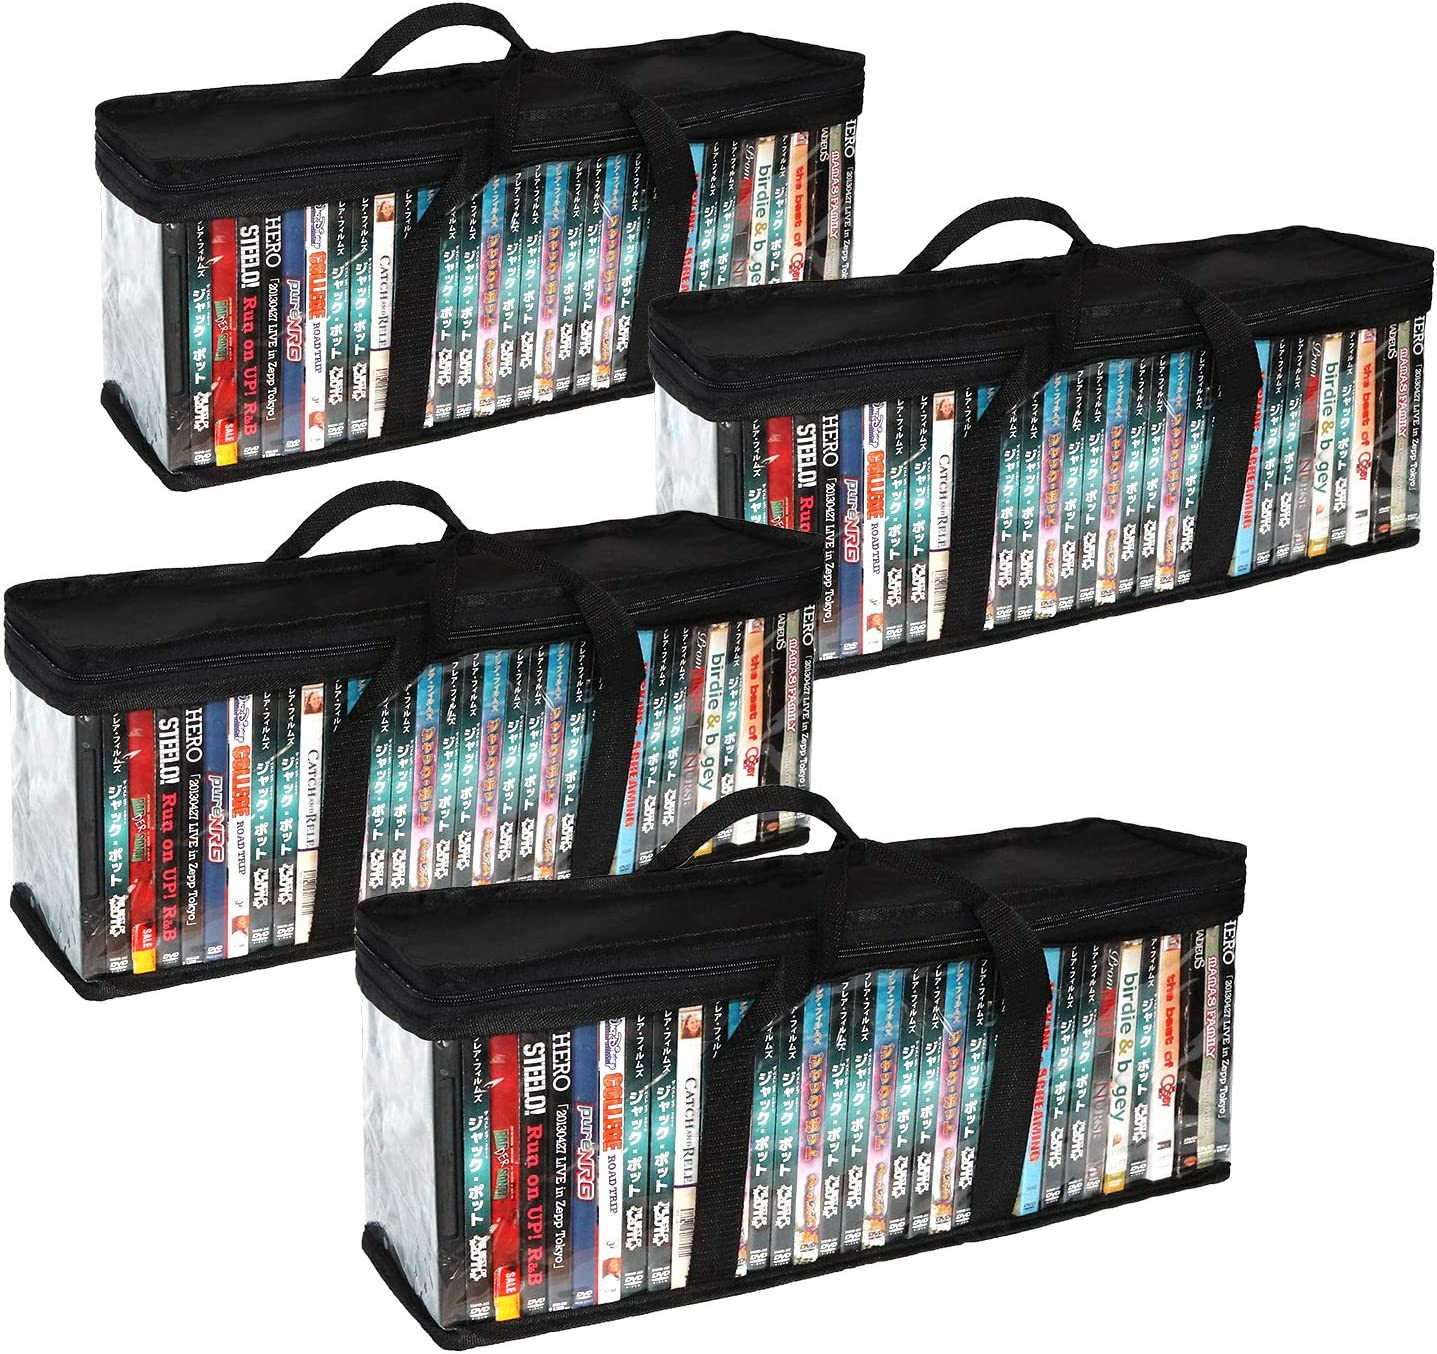 QEQRUG DVD Storage Case Holder Organizer Bags Black Stackable DVD Holder, Hold up to 160 DVDs, BluRay, Movies, Media, PS4 Video Games, Set of 4, Easy to Carry